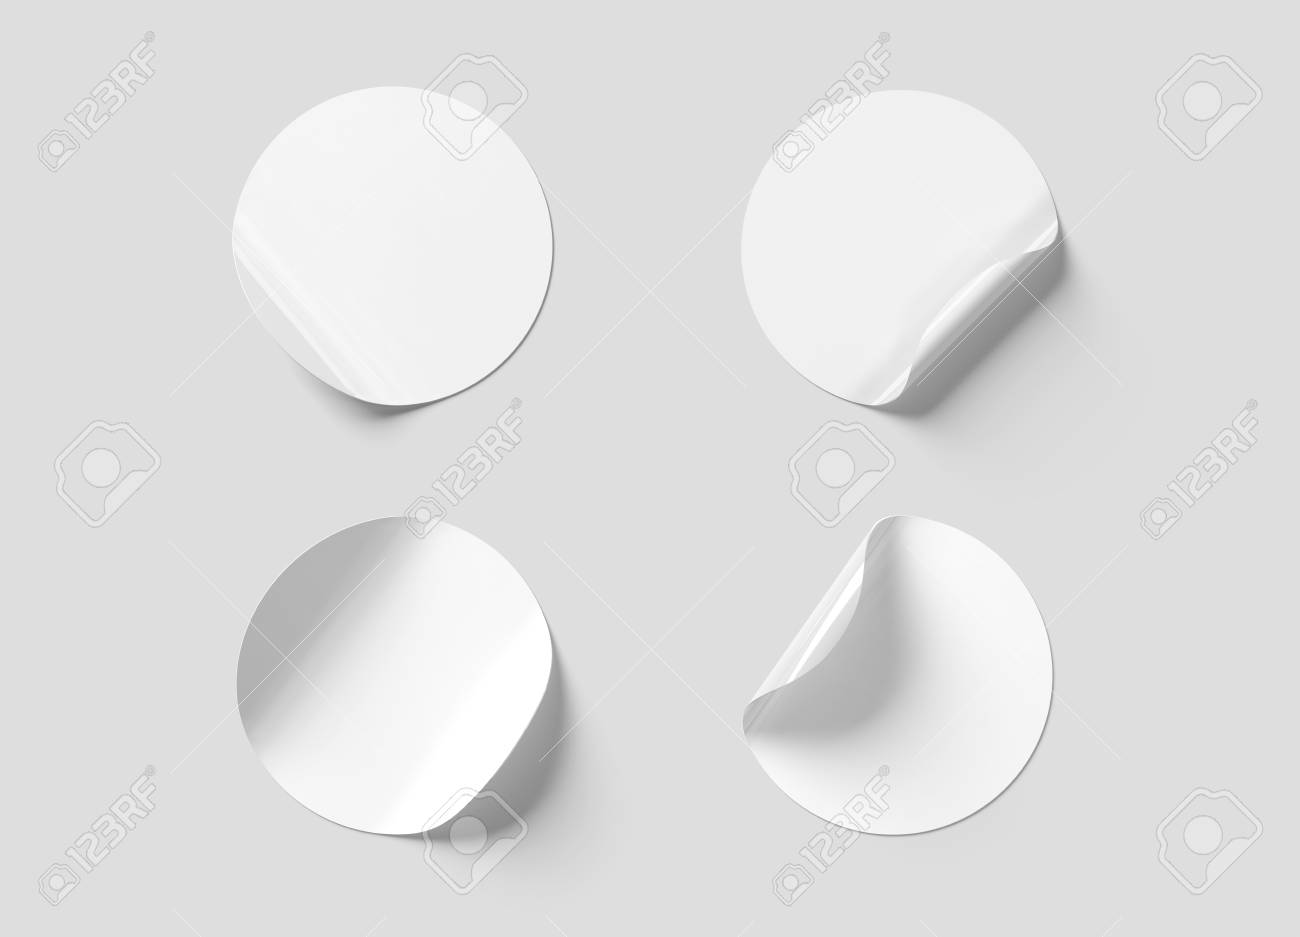 Blank curled sticker mockup isolated on white background 3D rendering